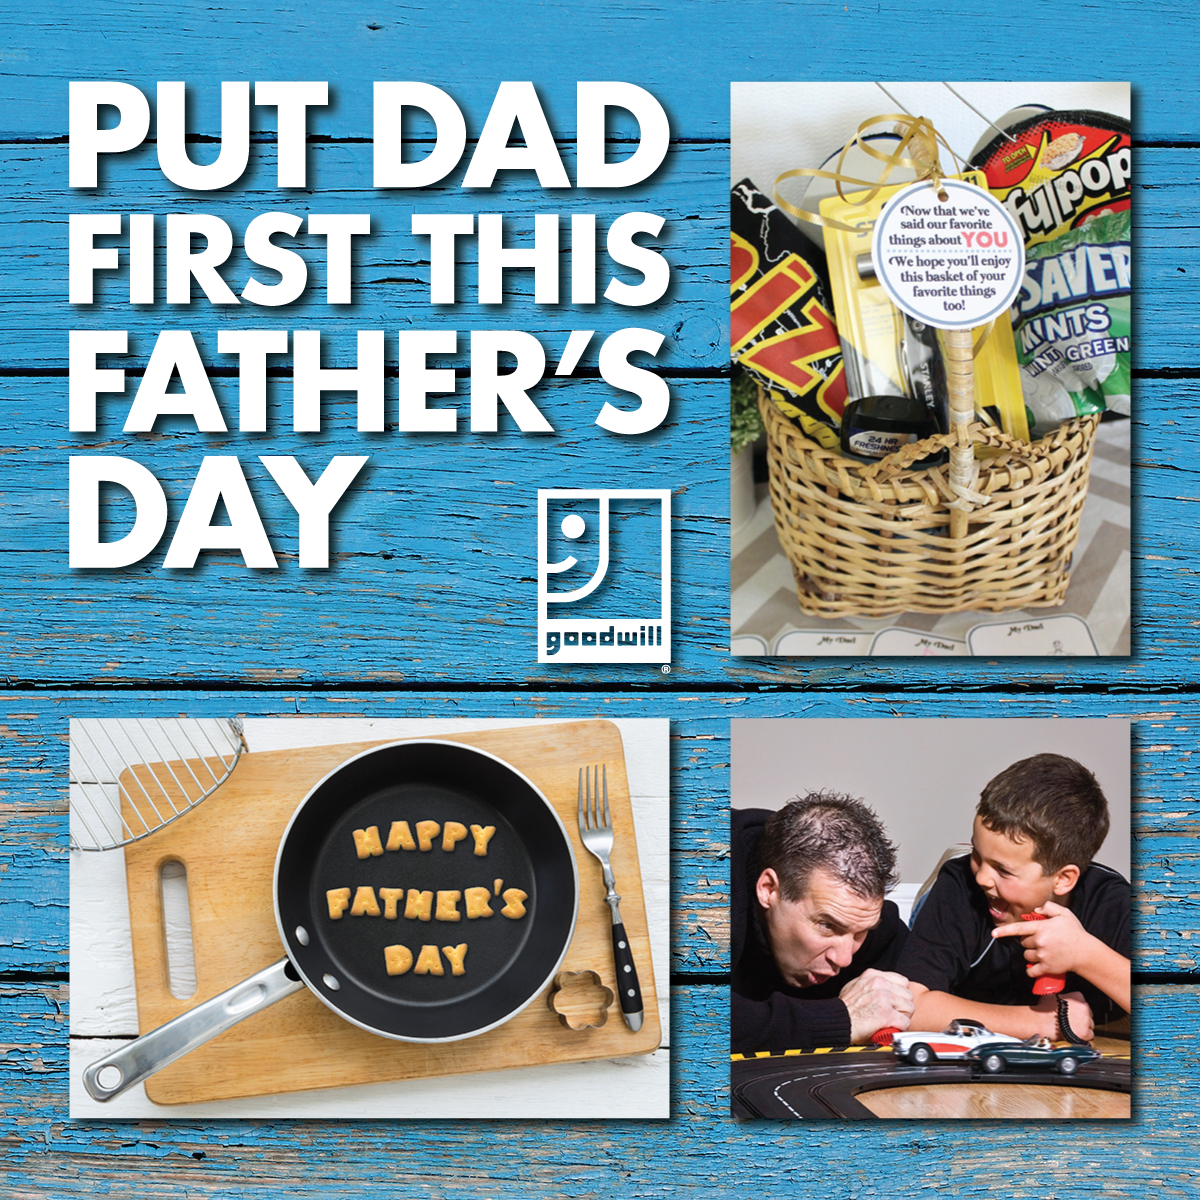 Put Dad First This Father's Day